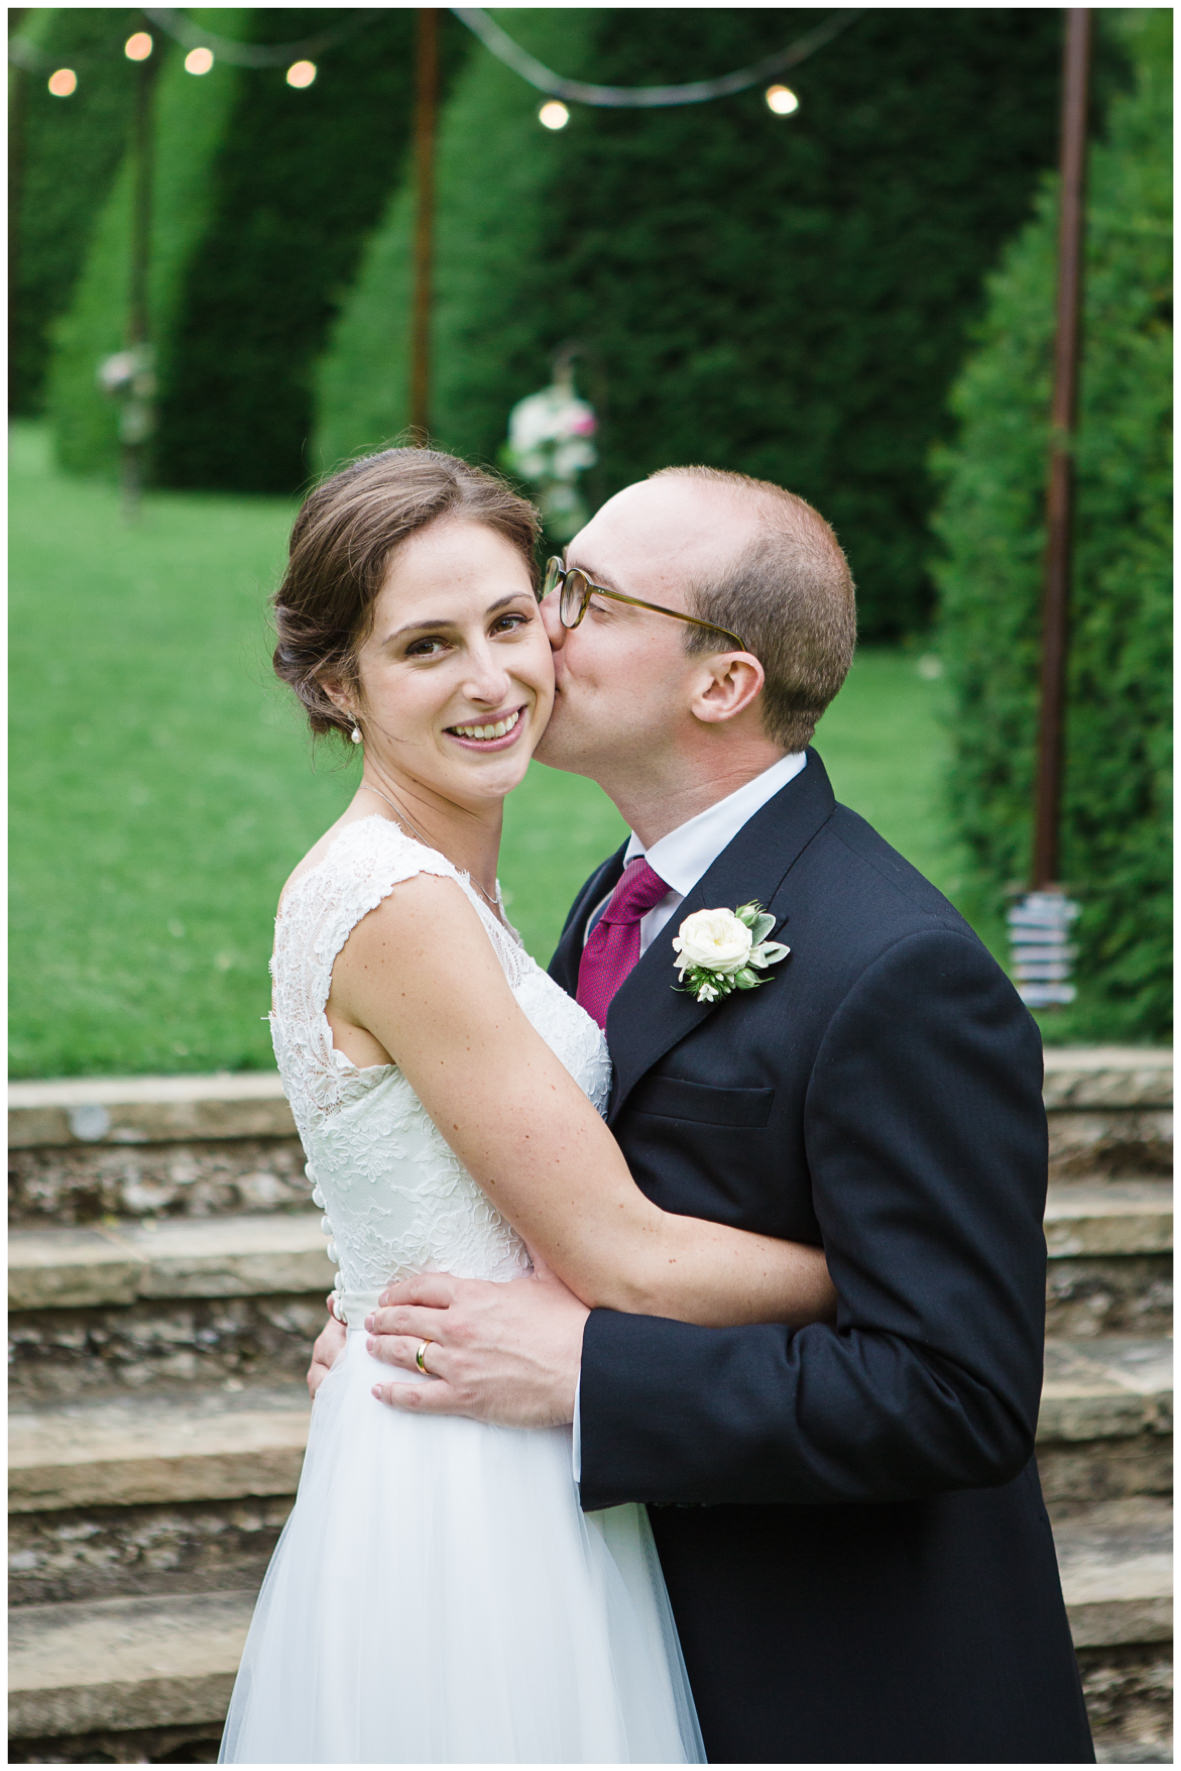 Lucy Davenport Photography, Cornwell Manor, wedding venue, Oxfordshire, Cotswold wedding, bride and groom, bridal couple, couple portraits